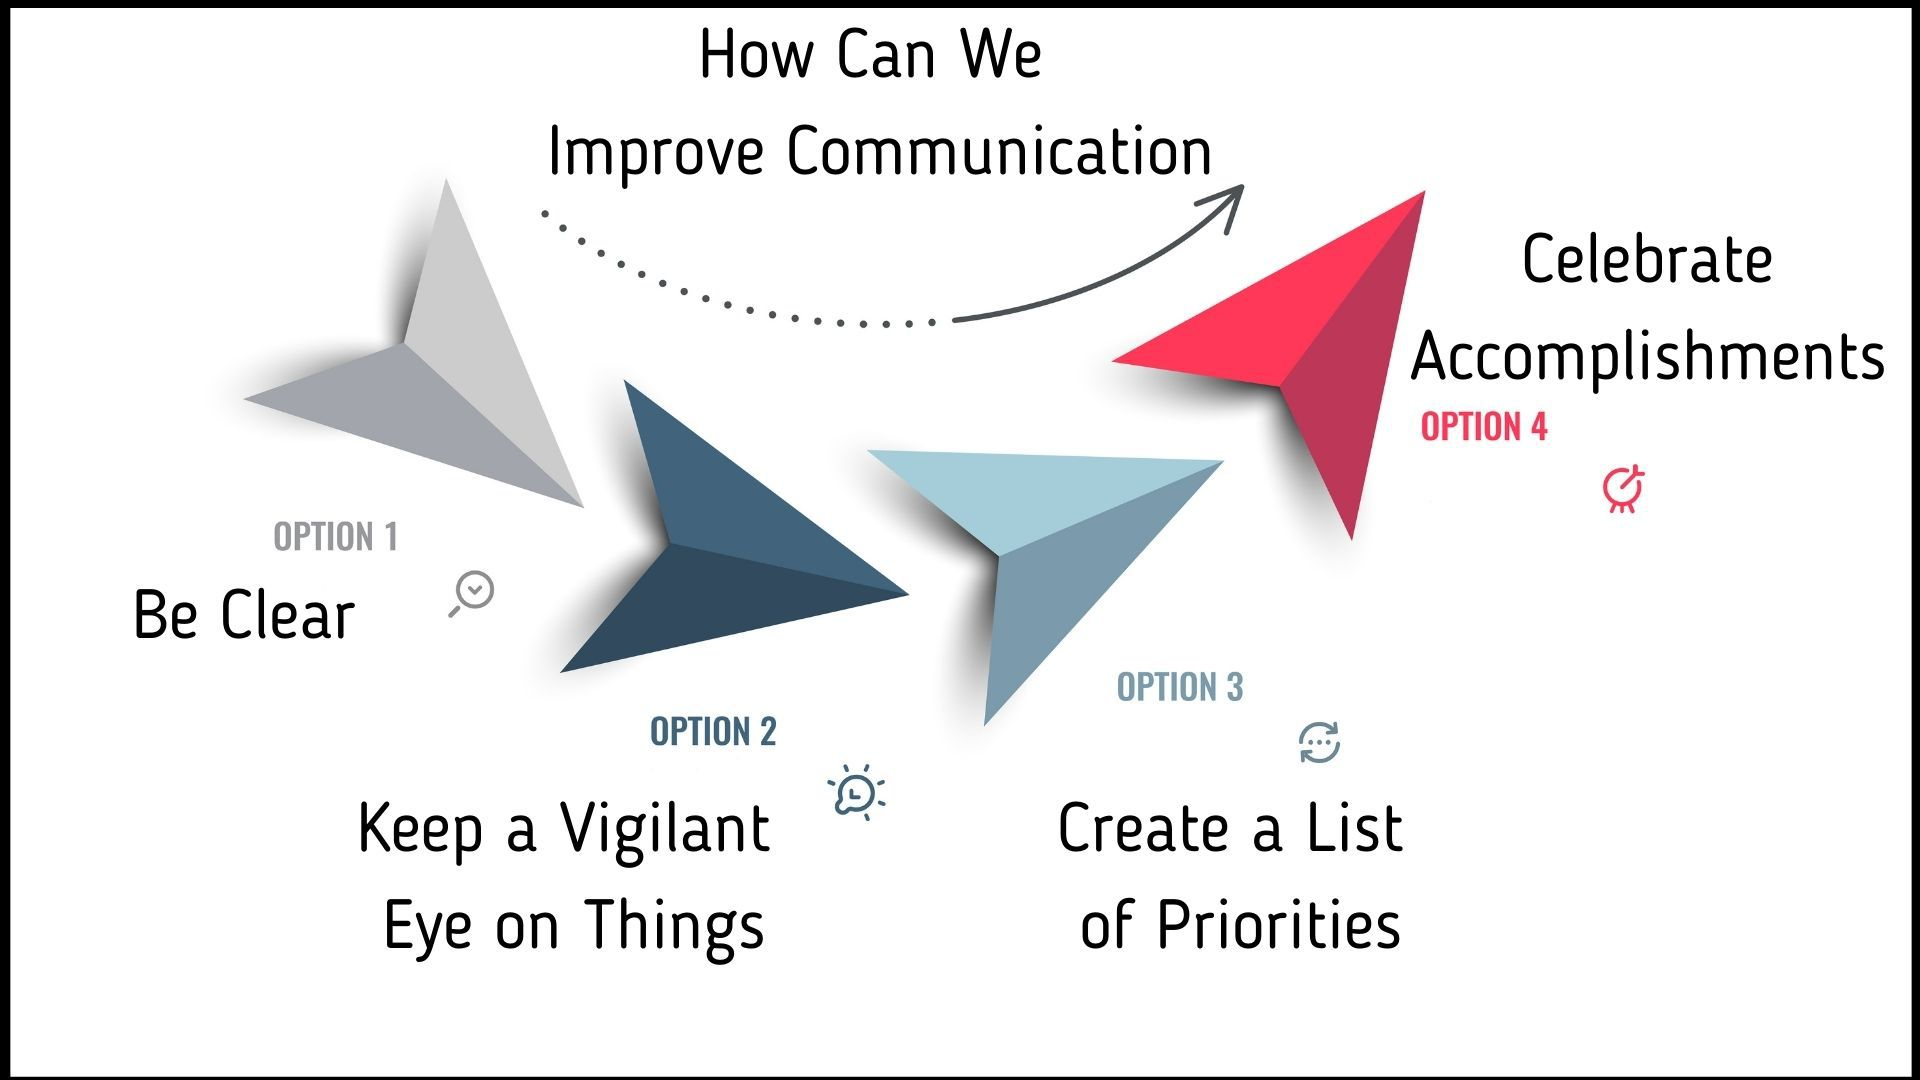 How Can We Improve Communication